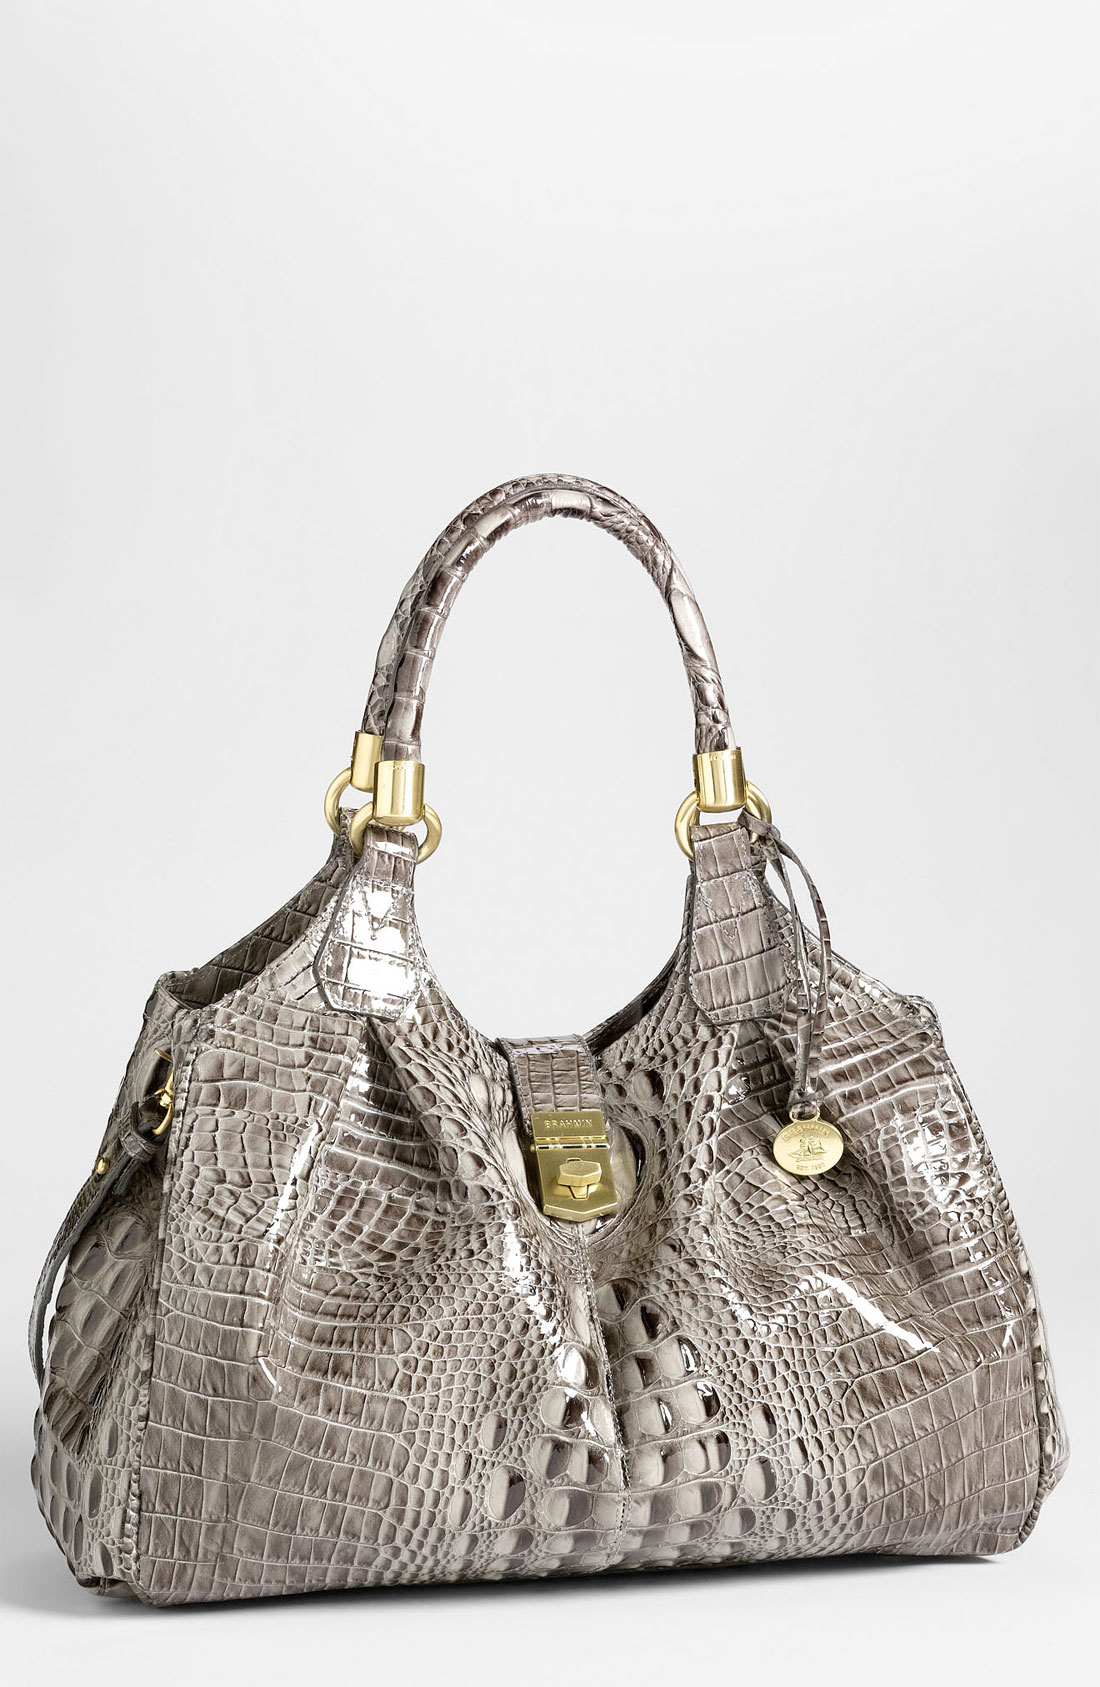 Shop for and buy brahmin clearance handbags online at Macy's. Find brahmin clearance handbags at Macy's.